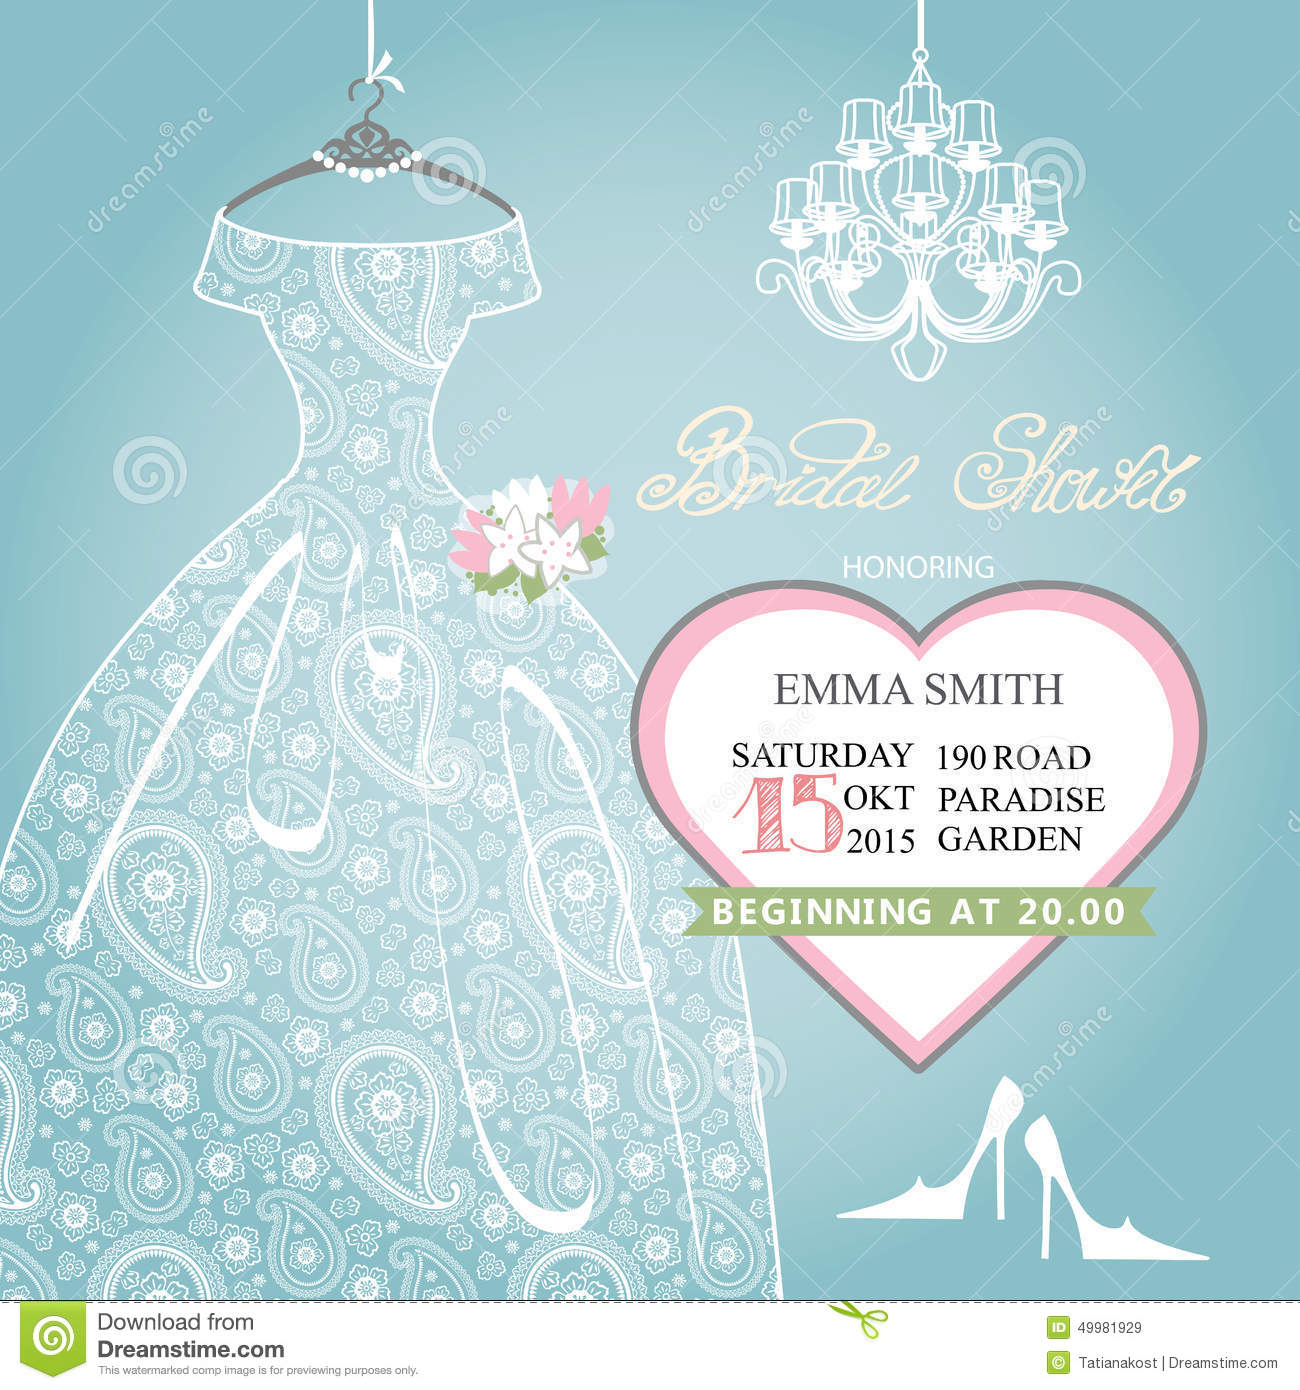 Bridal Shower Invitation Wedding Lace Dress On Stock Vector